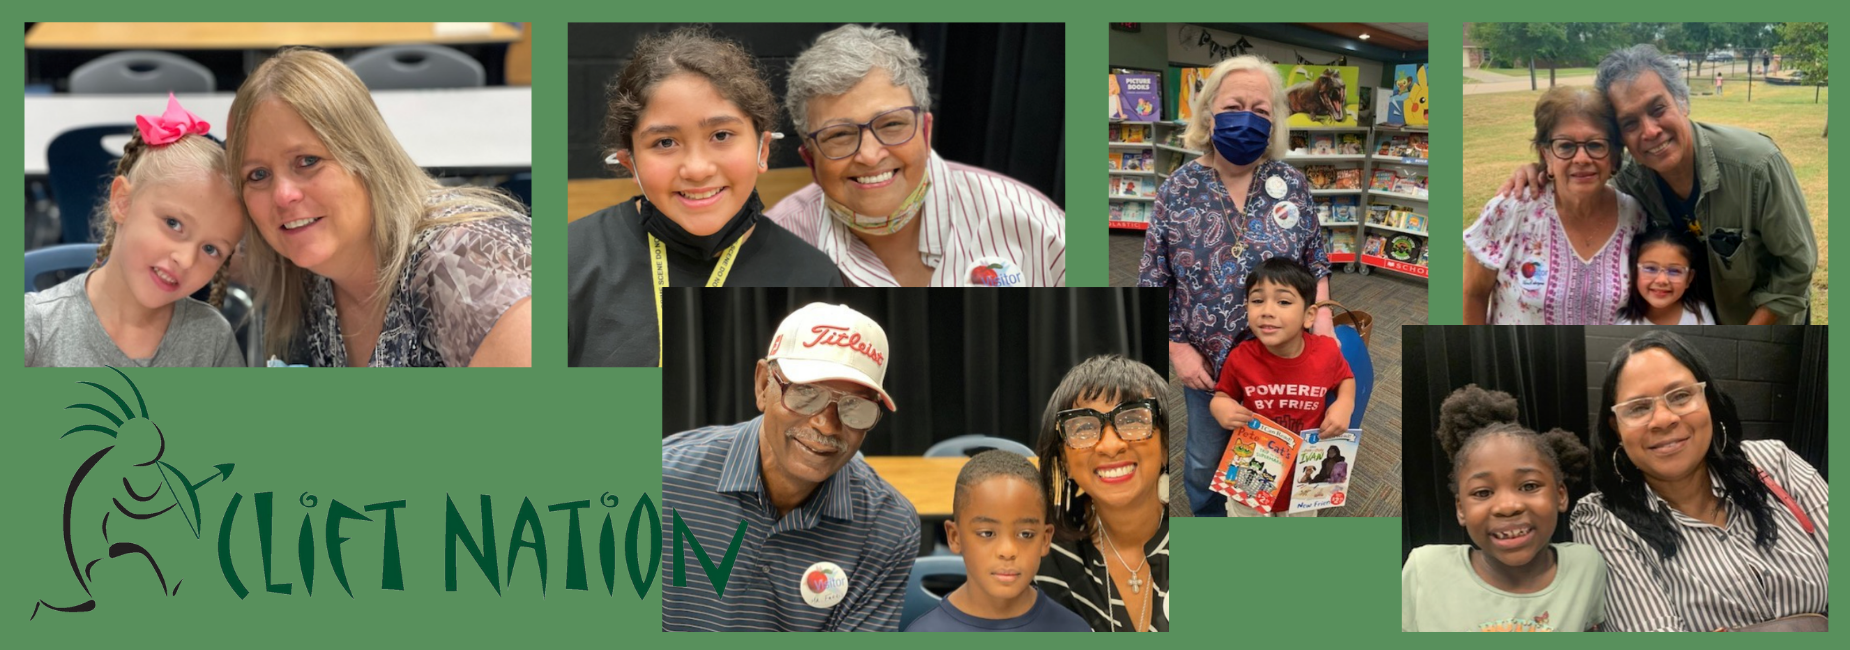 collage of young students with their grandparents at school